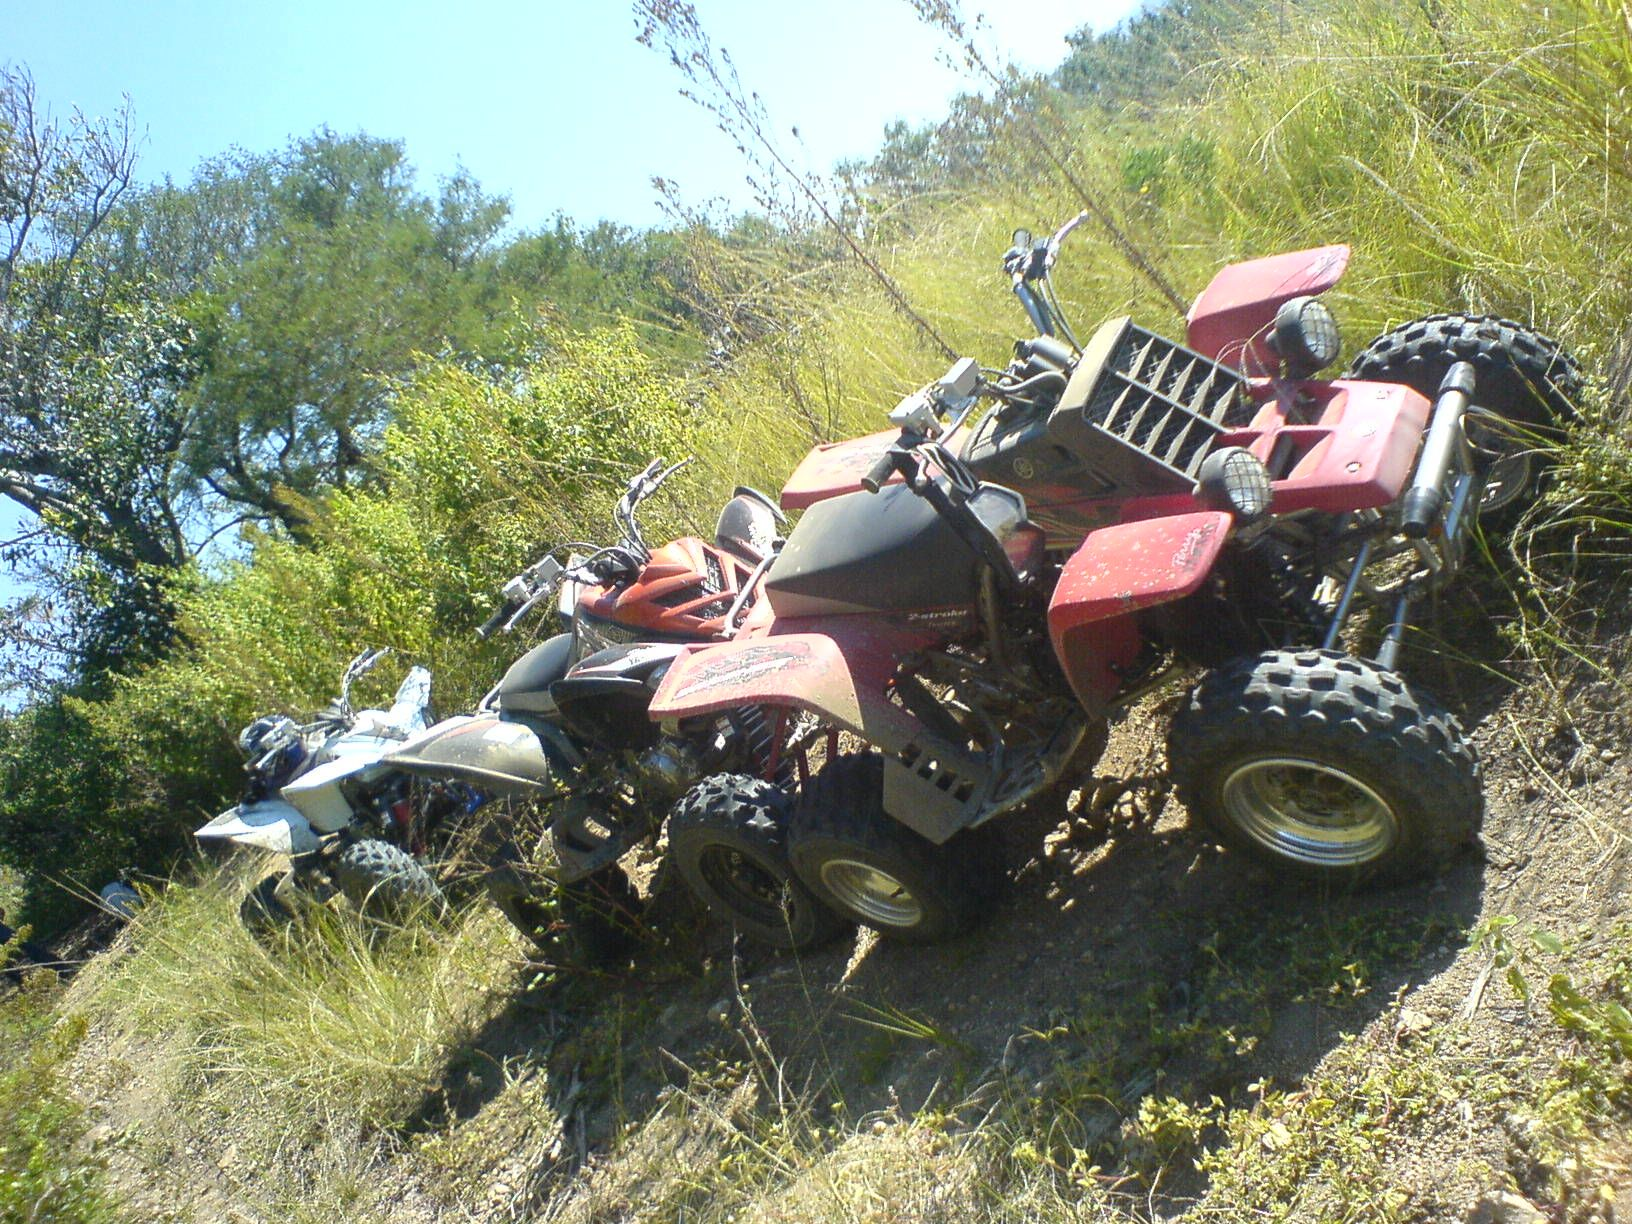 Yamaha: Banshee, Raptor 700 yfz450 on ride in South coast, Kzn ...